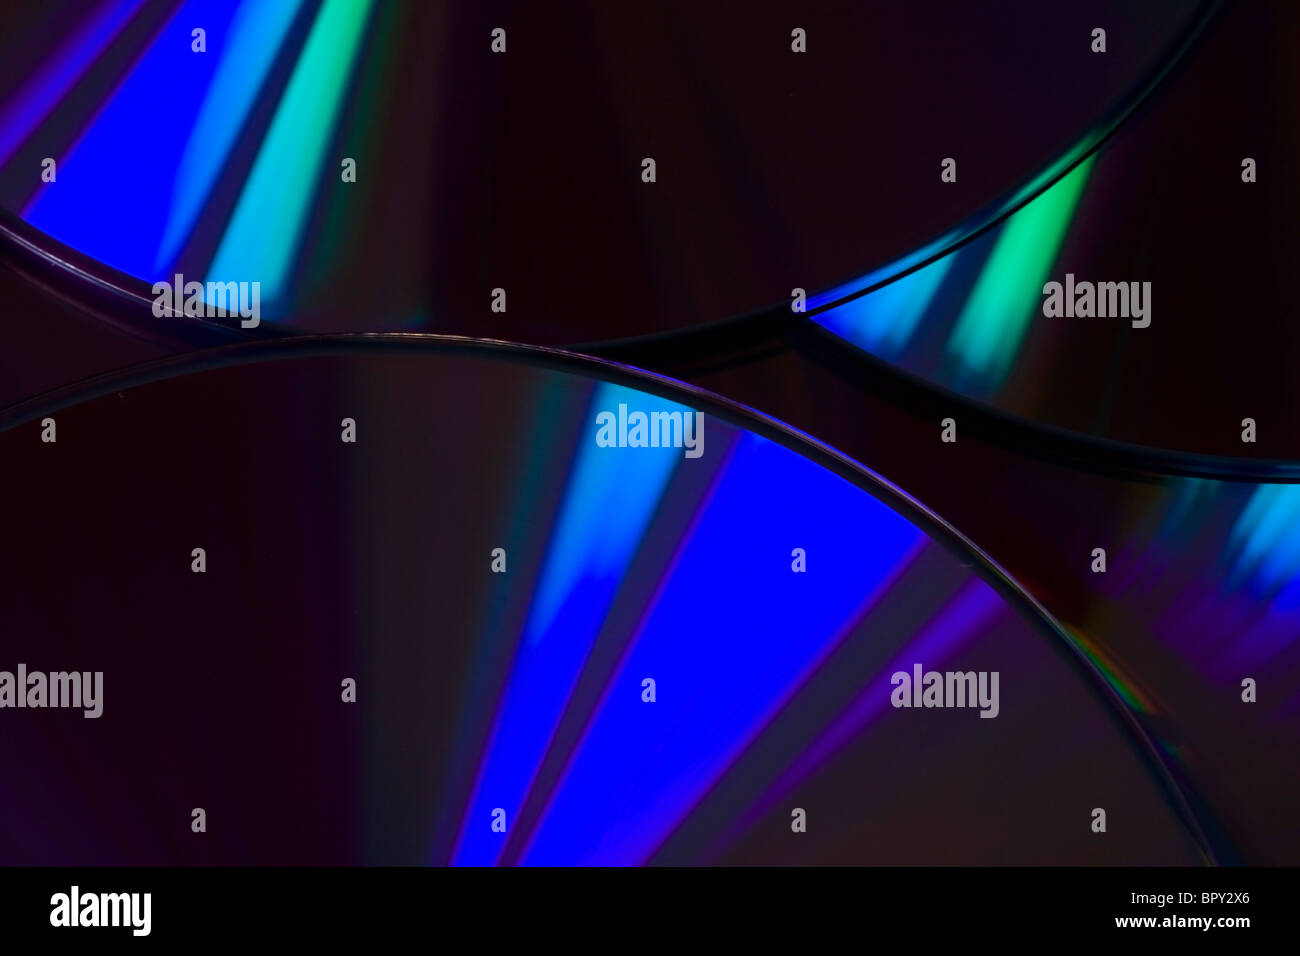 Many colorful DVD lying upon each other - landscape format - Stock Image